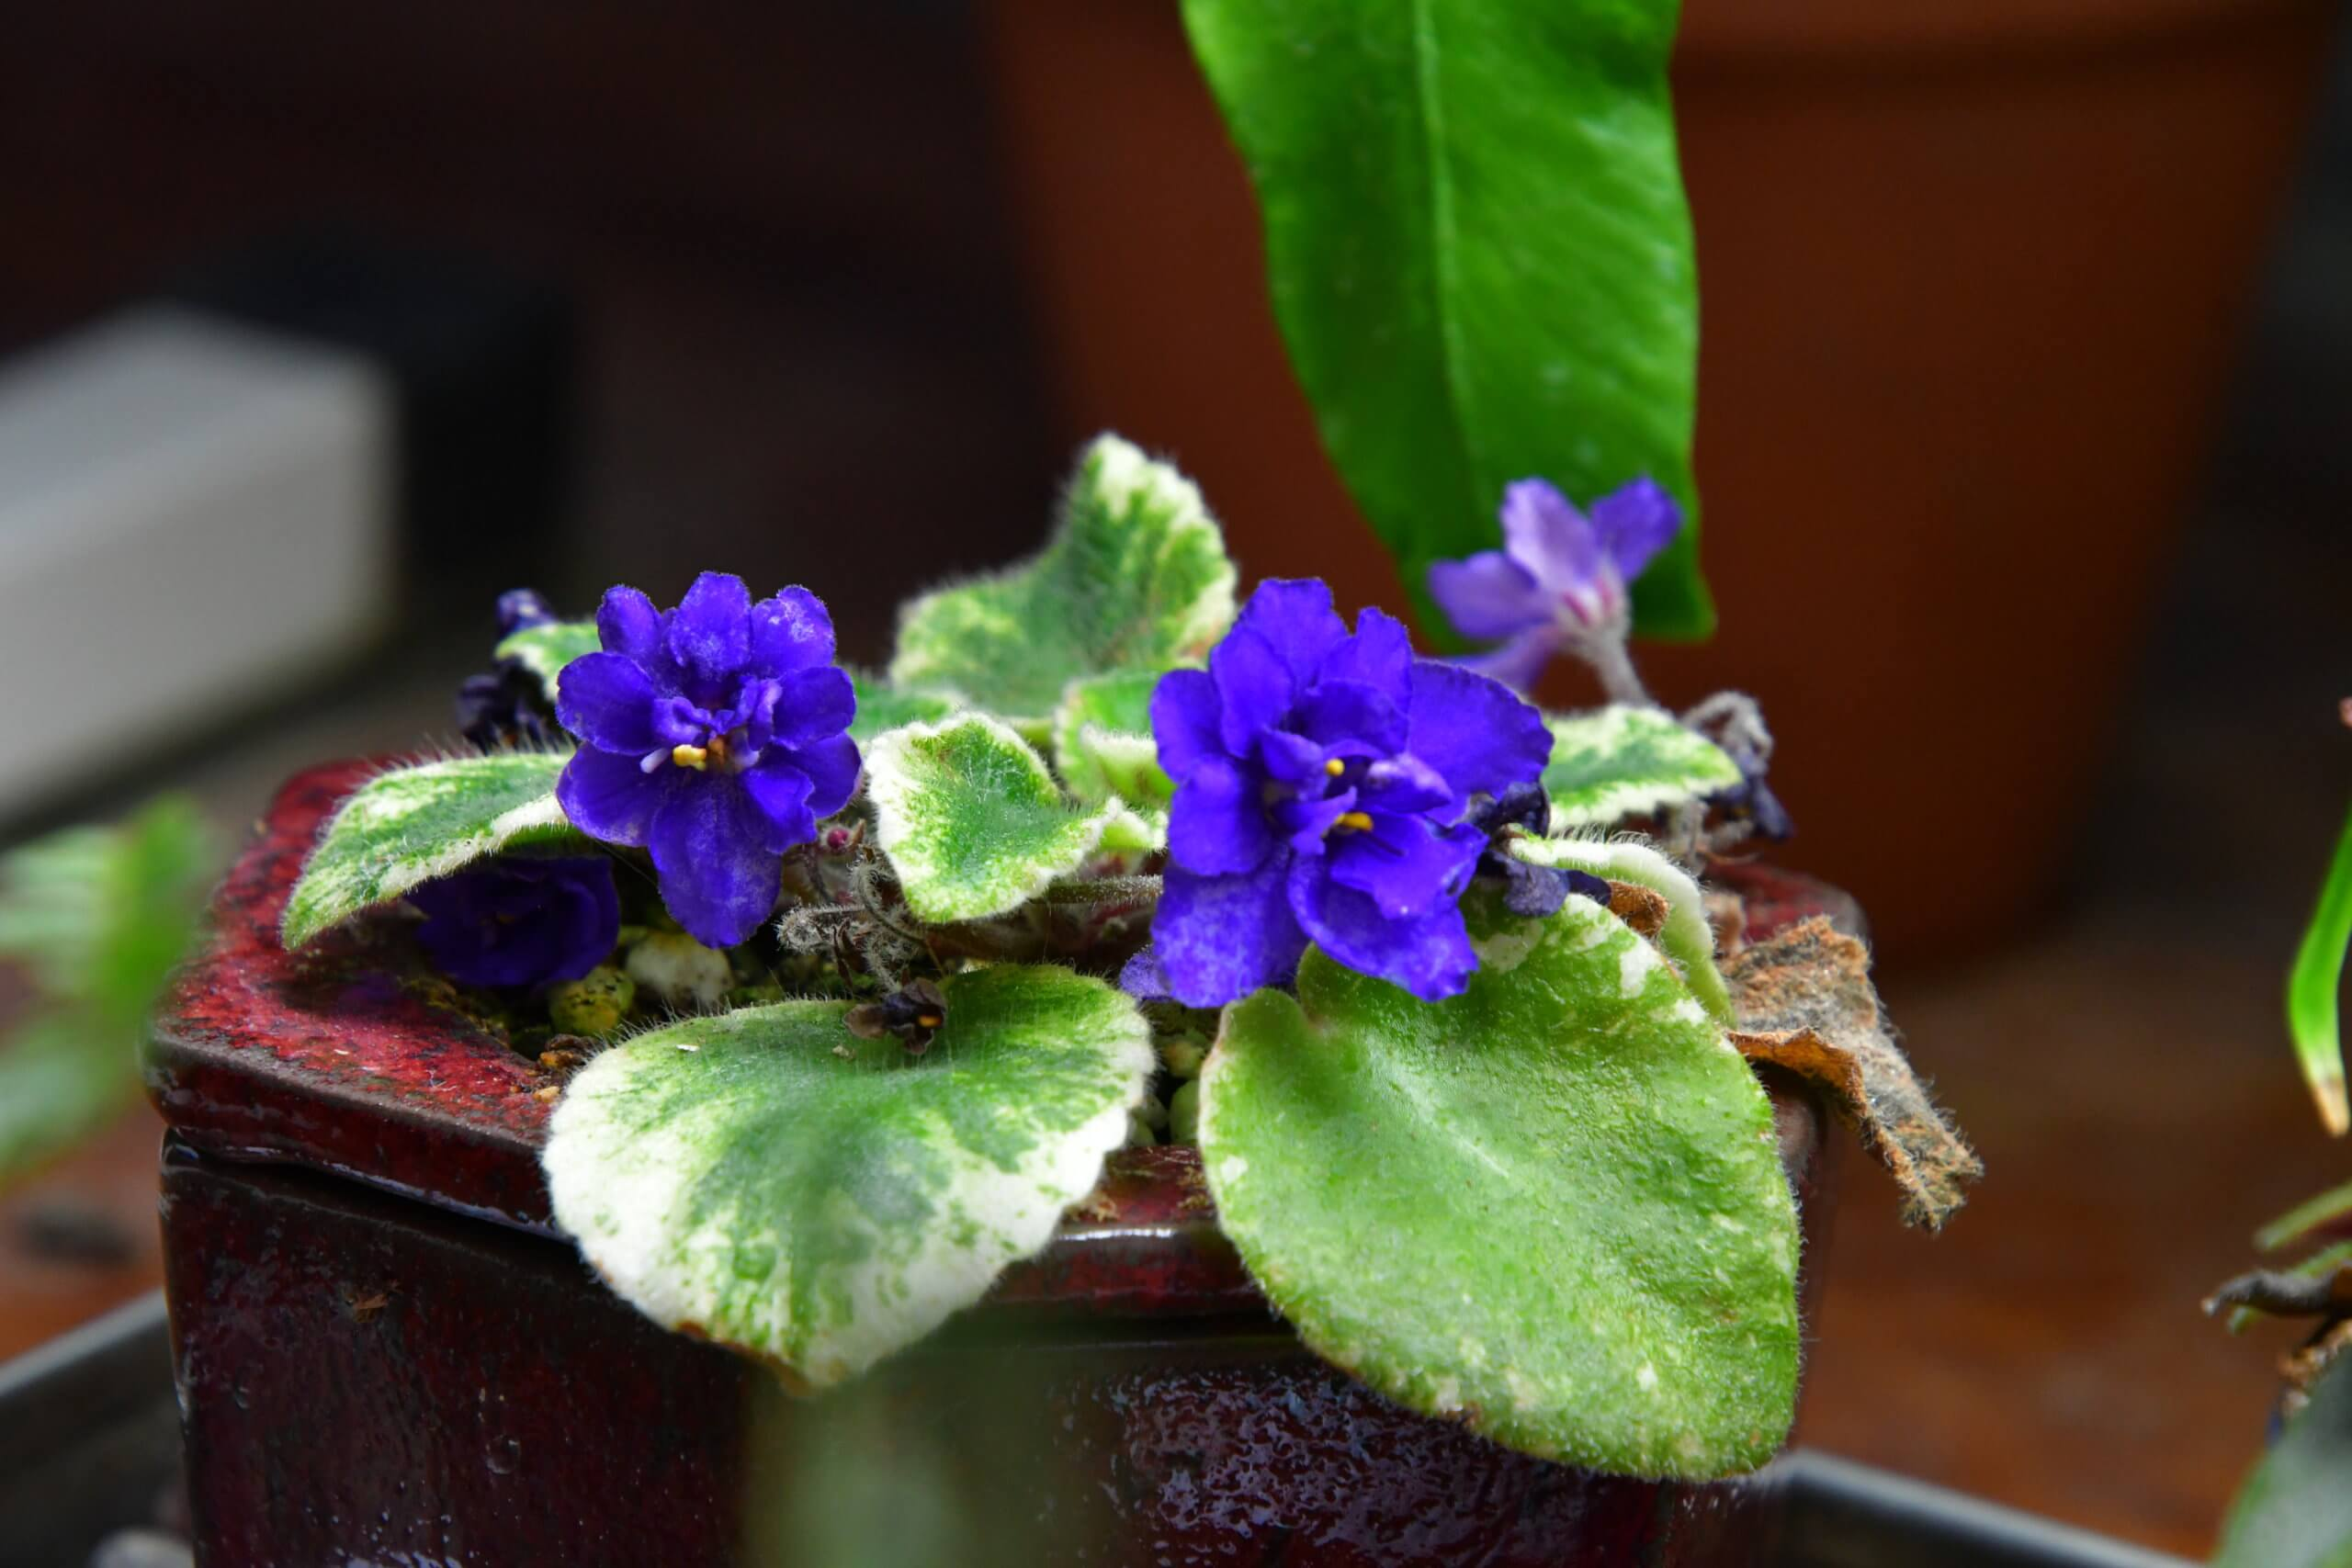 This African violet's deep indigo hues pop against its green, furry leaves.